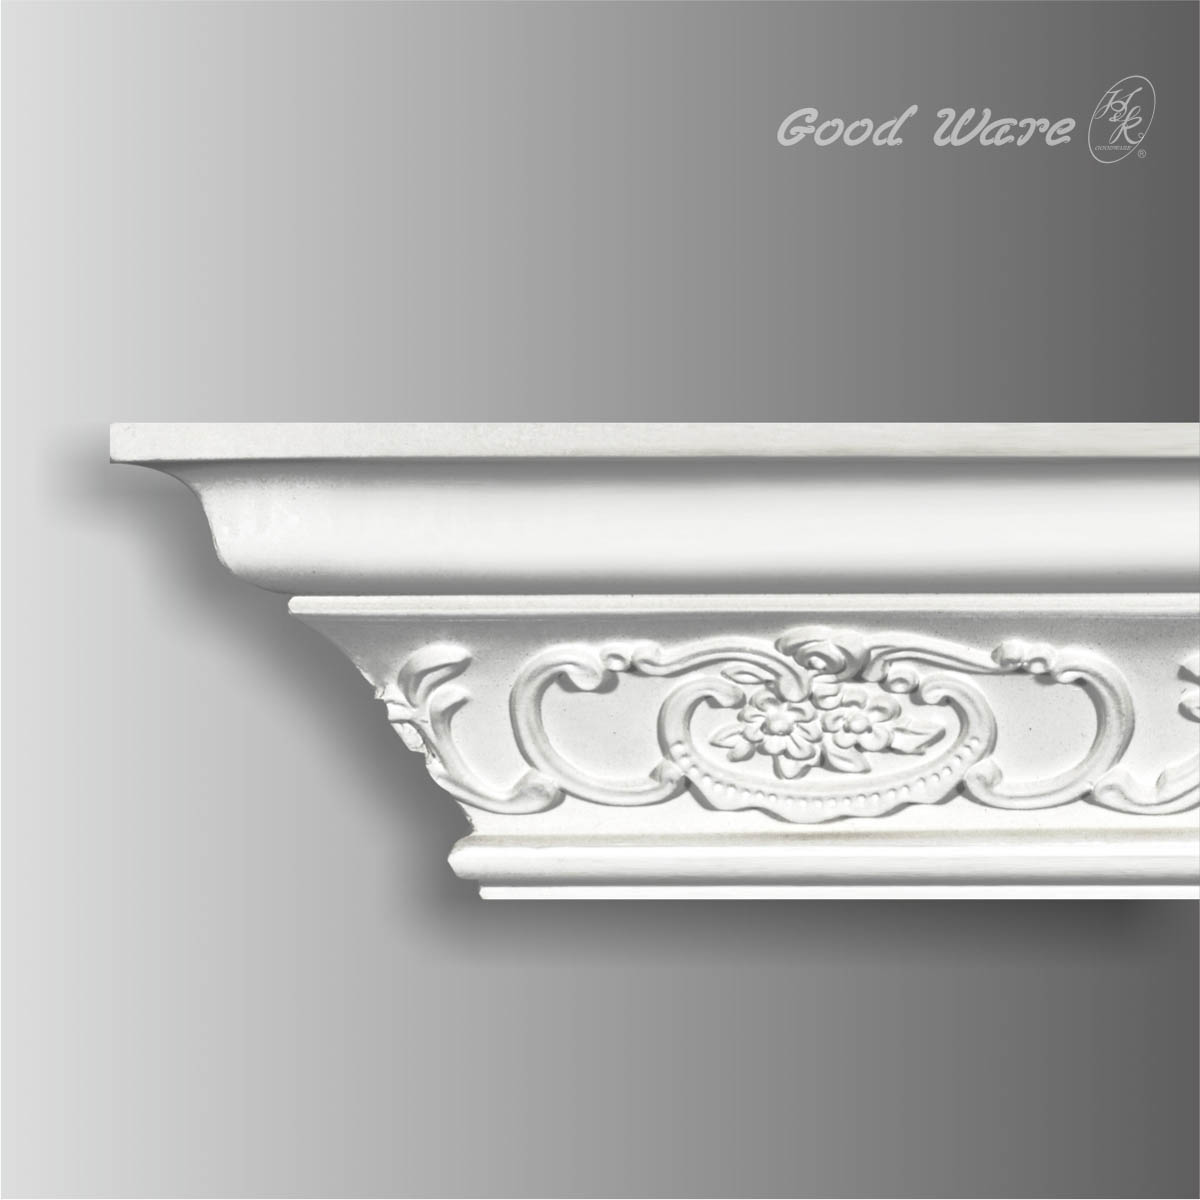 Polyurethane floral cornice mouldings